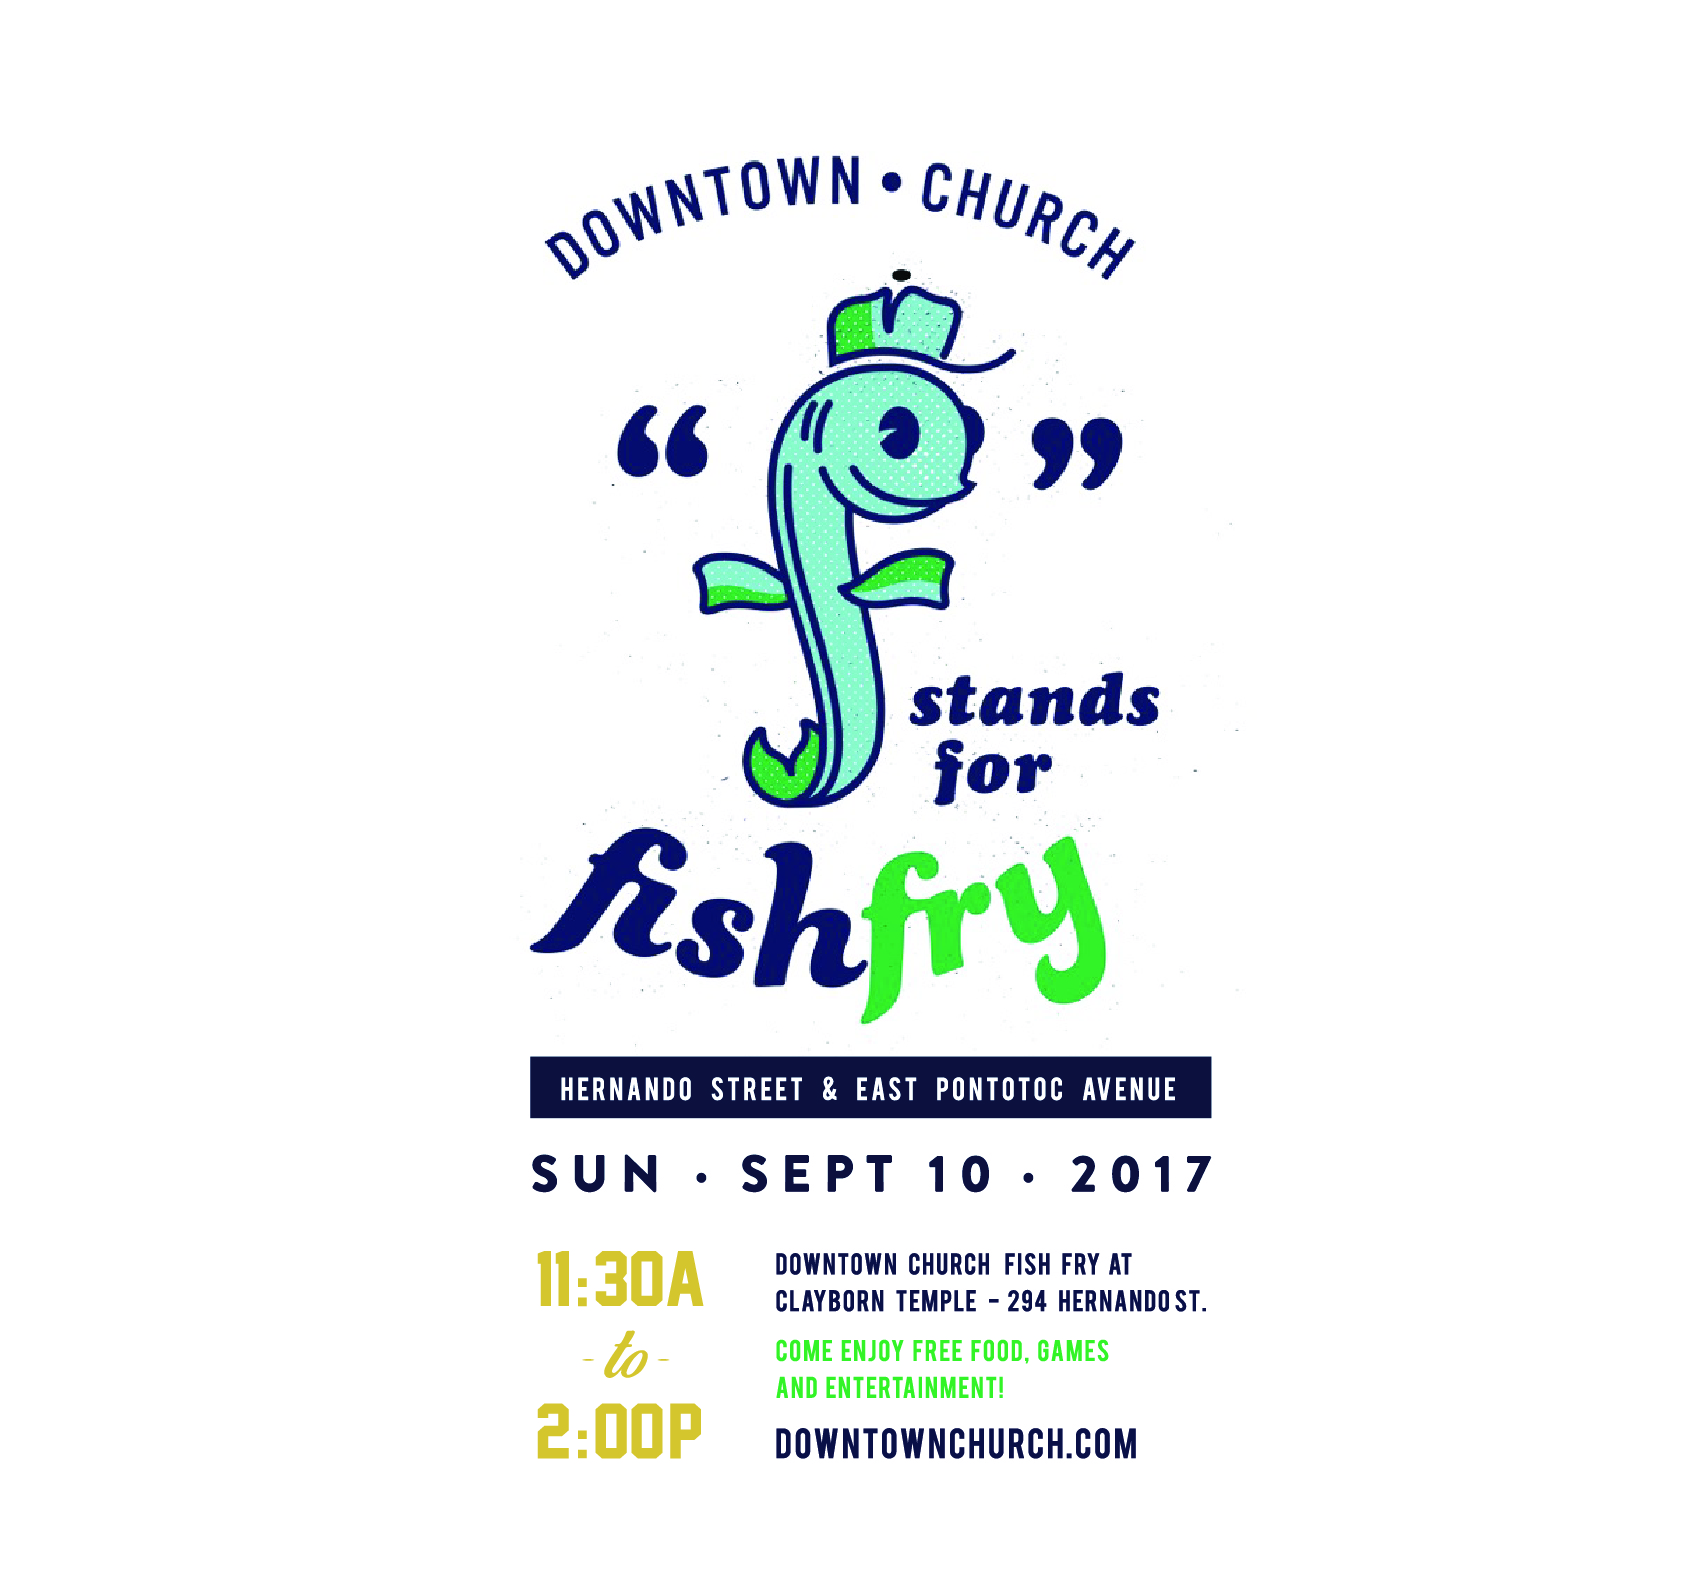 DC_fishfry_graphic_2017